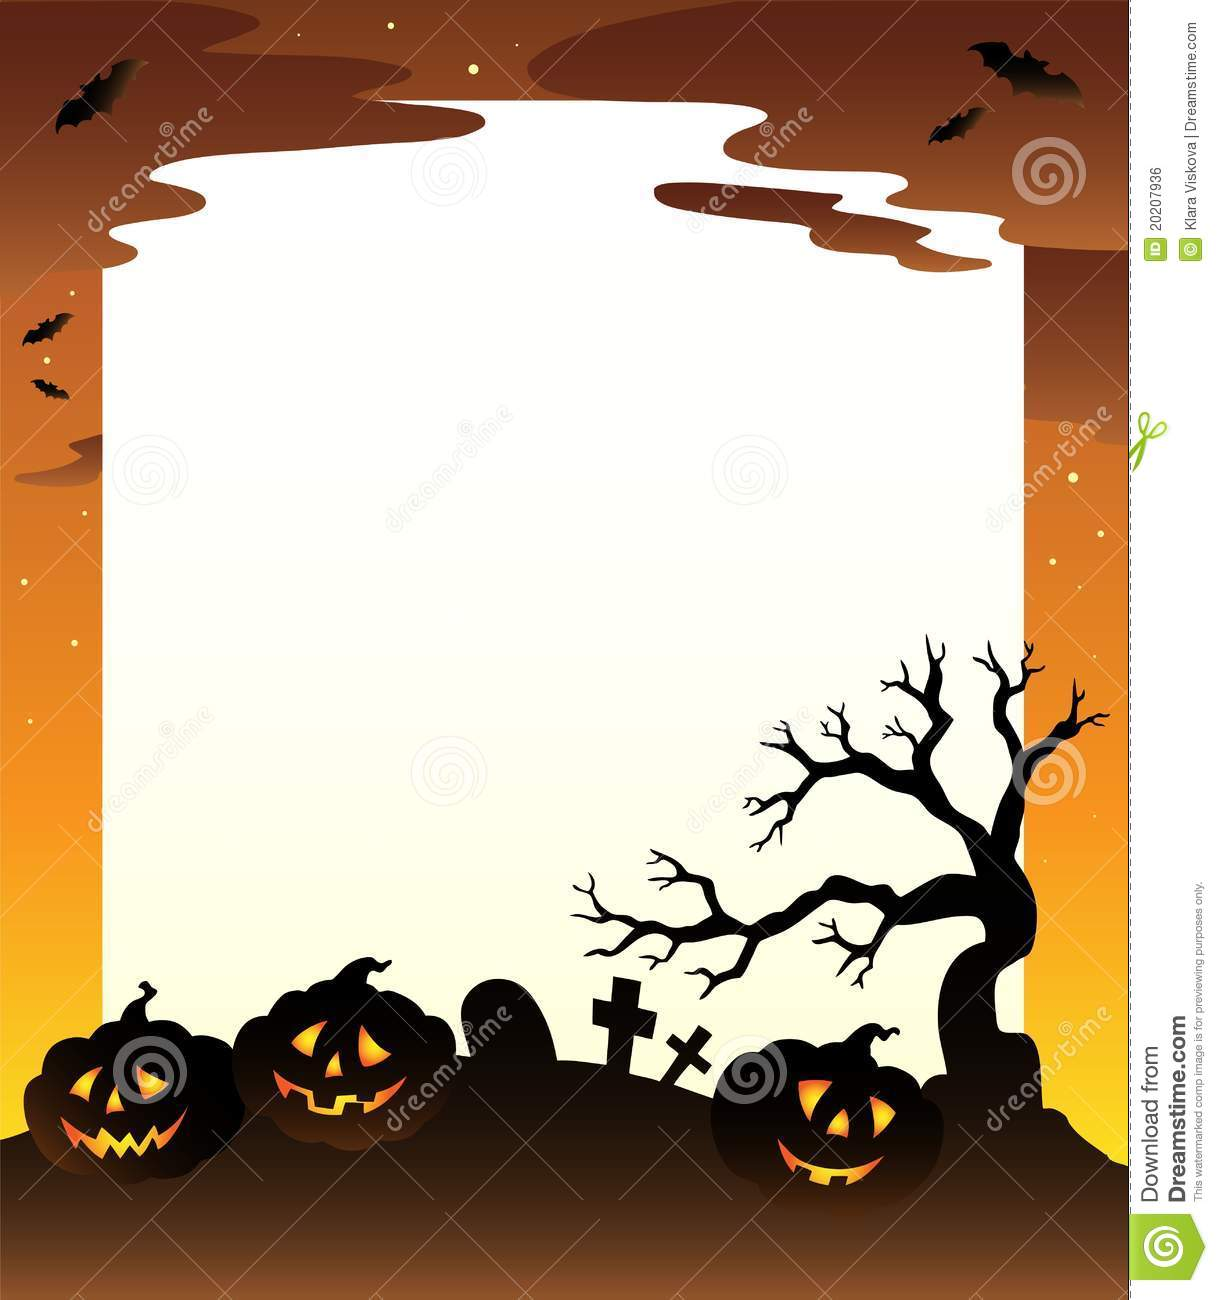 1218x1300 Cute Halloween Border Frame Free Clip Art For Halloween Picture